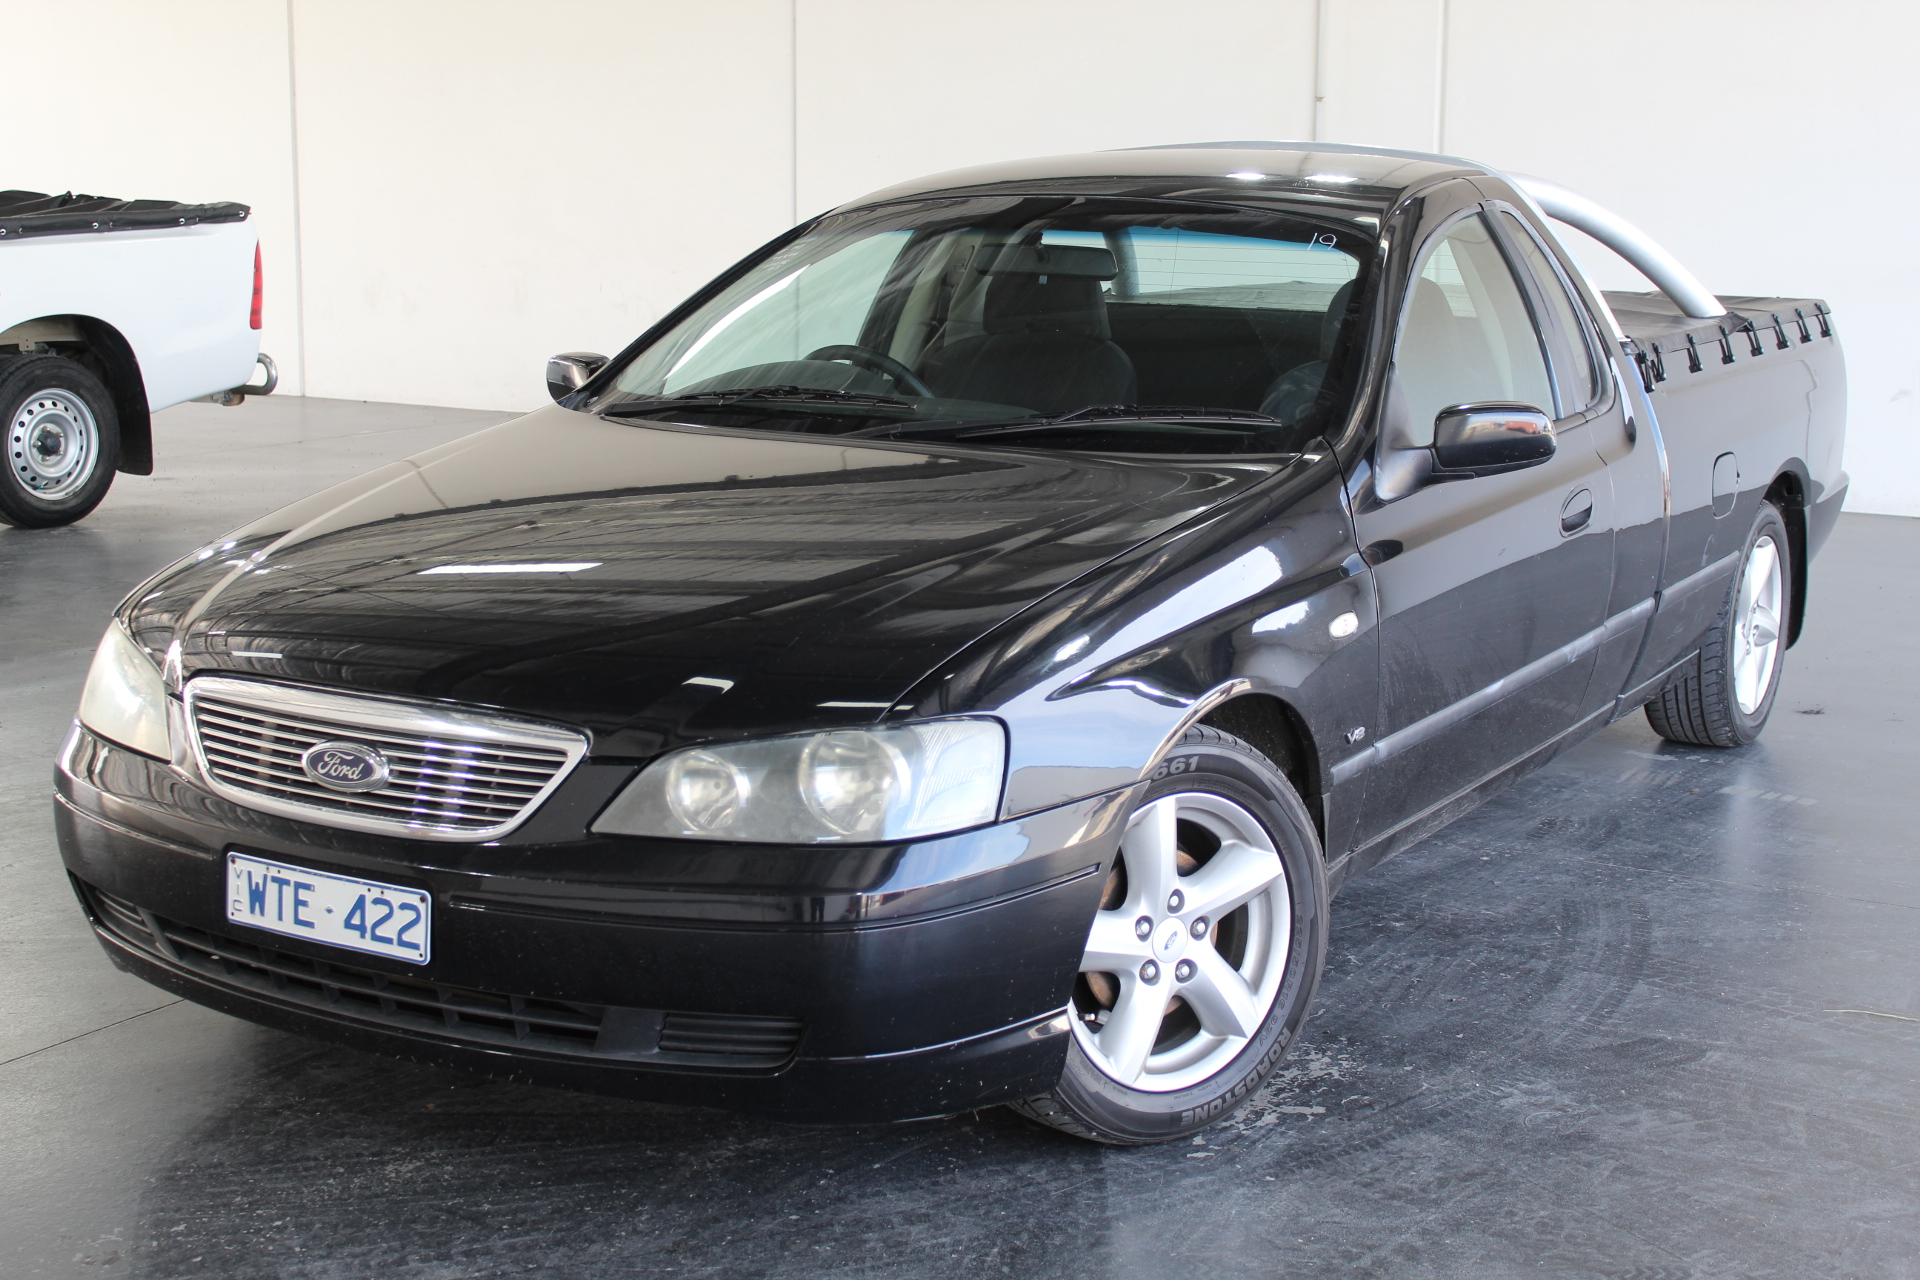 2003 Ford Falcon XLS BA Automatic Ute